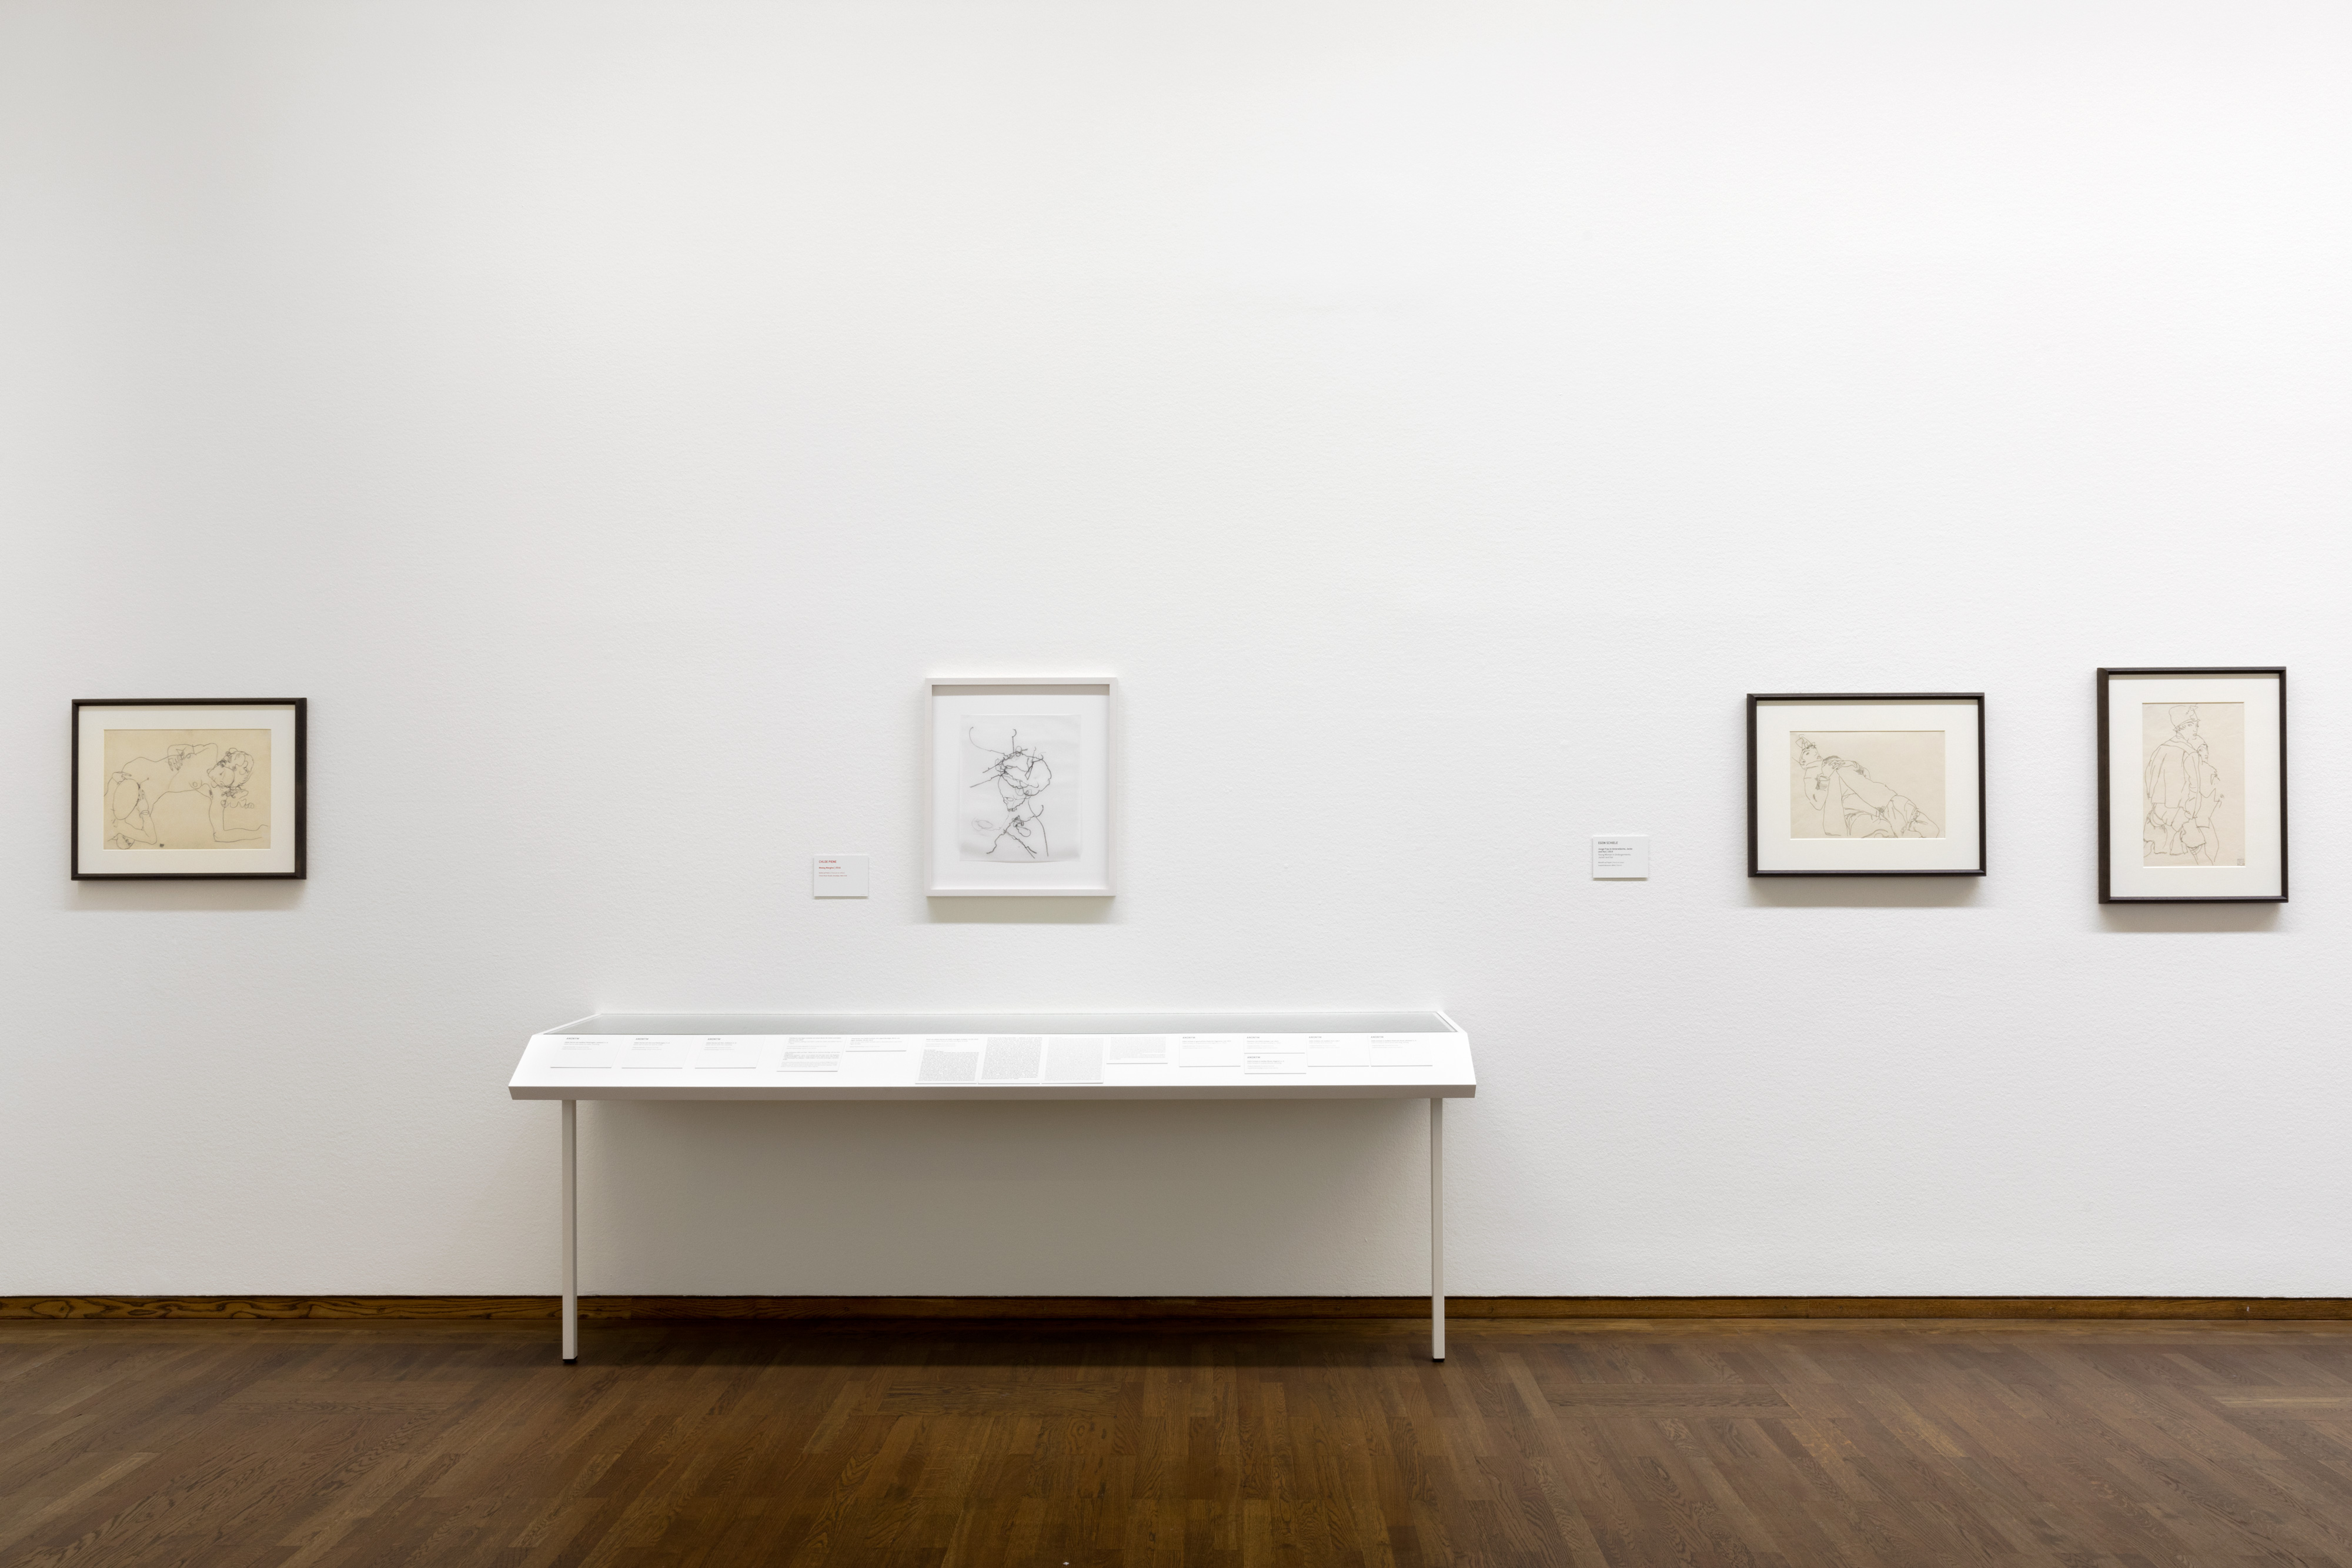 Galerie Barbara Thumm \ Chloe Piene – SCHIELE RELOADED AT THE LEOPOLD MUSEUM: NEW IMPETUS FOR JUBILEE SHOW